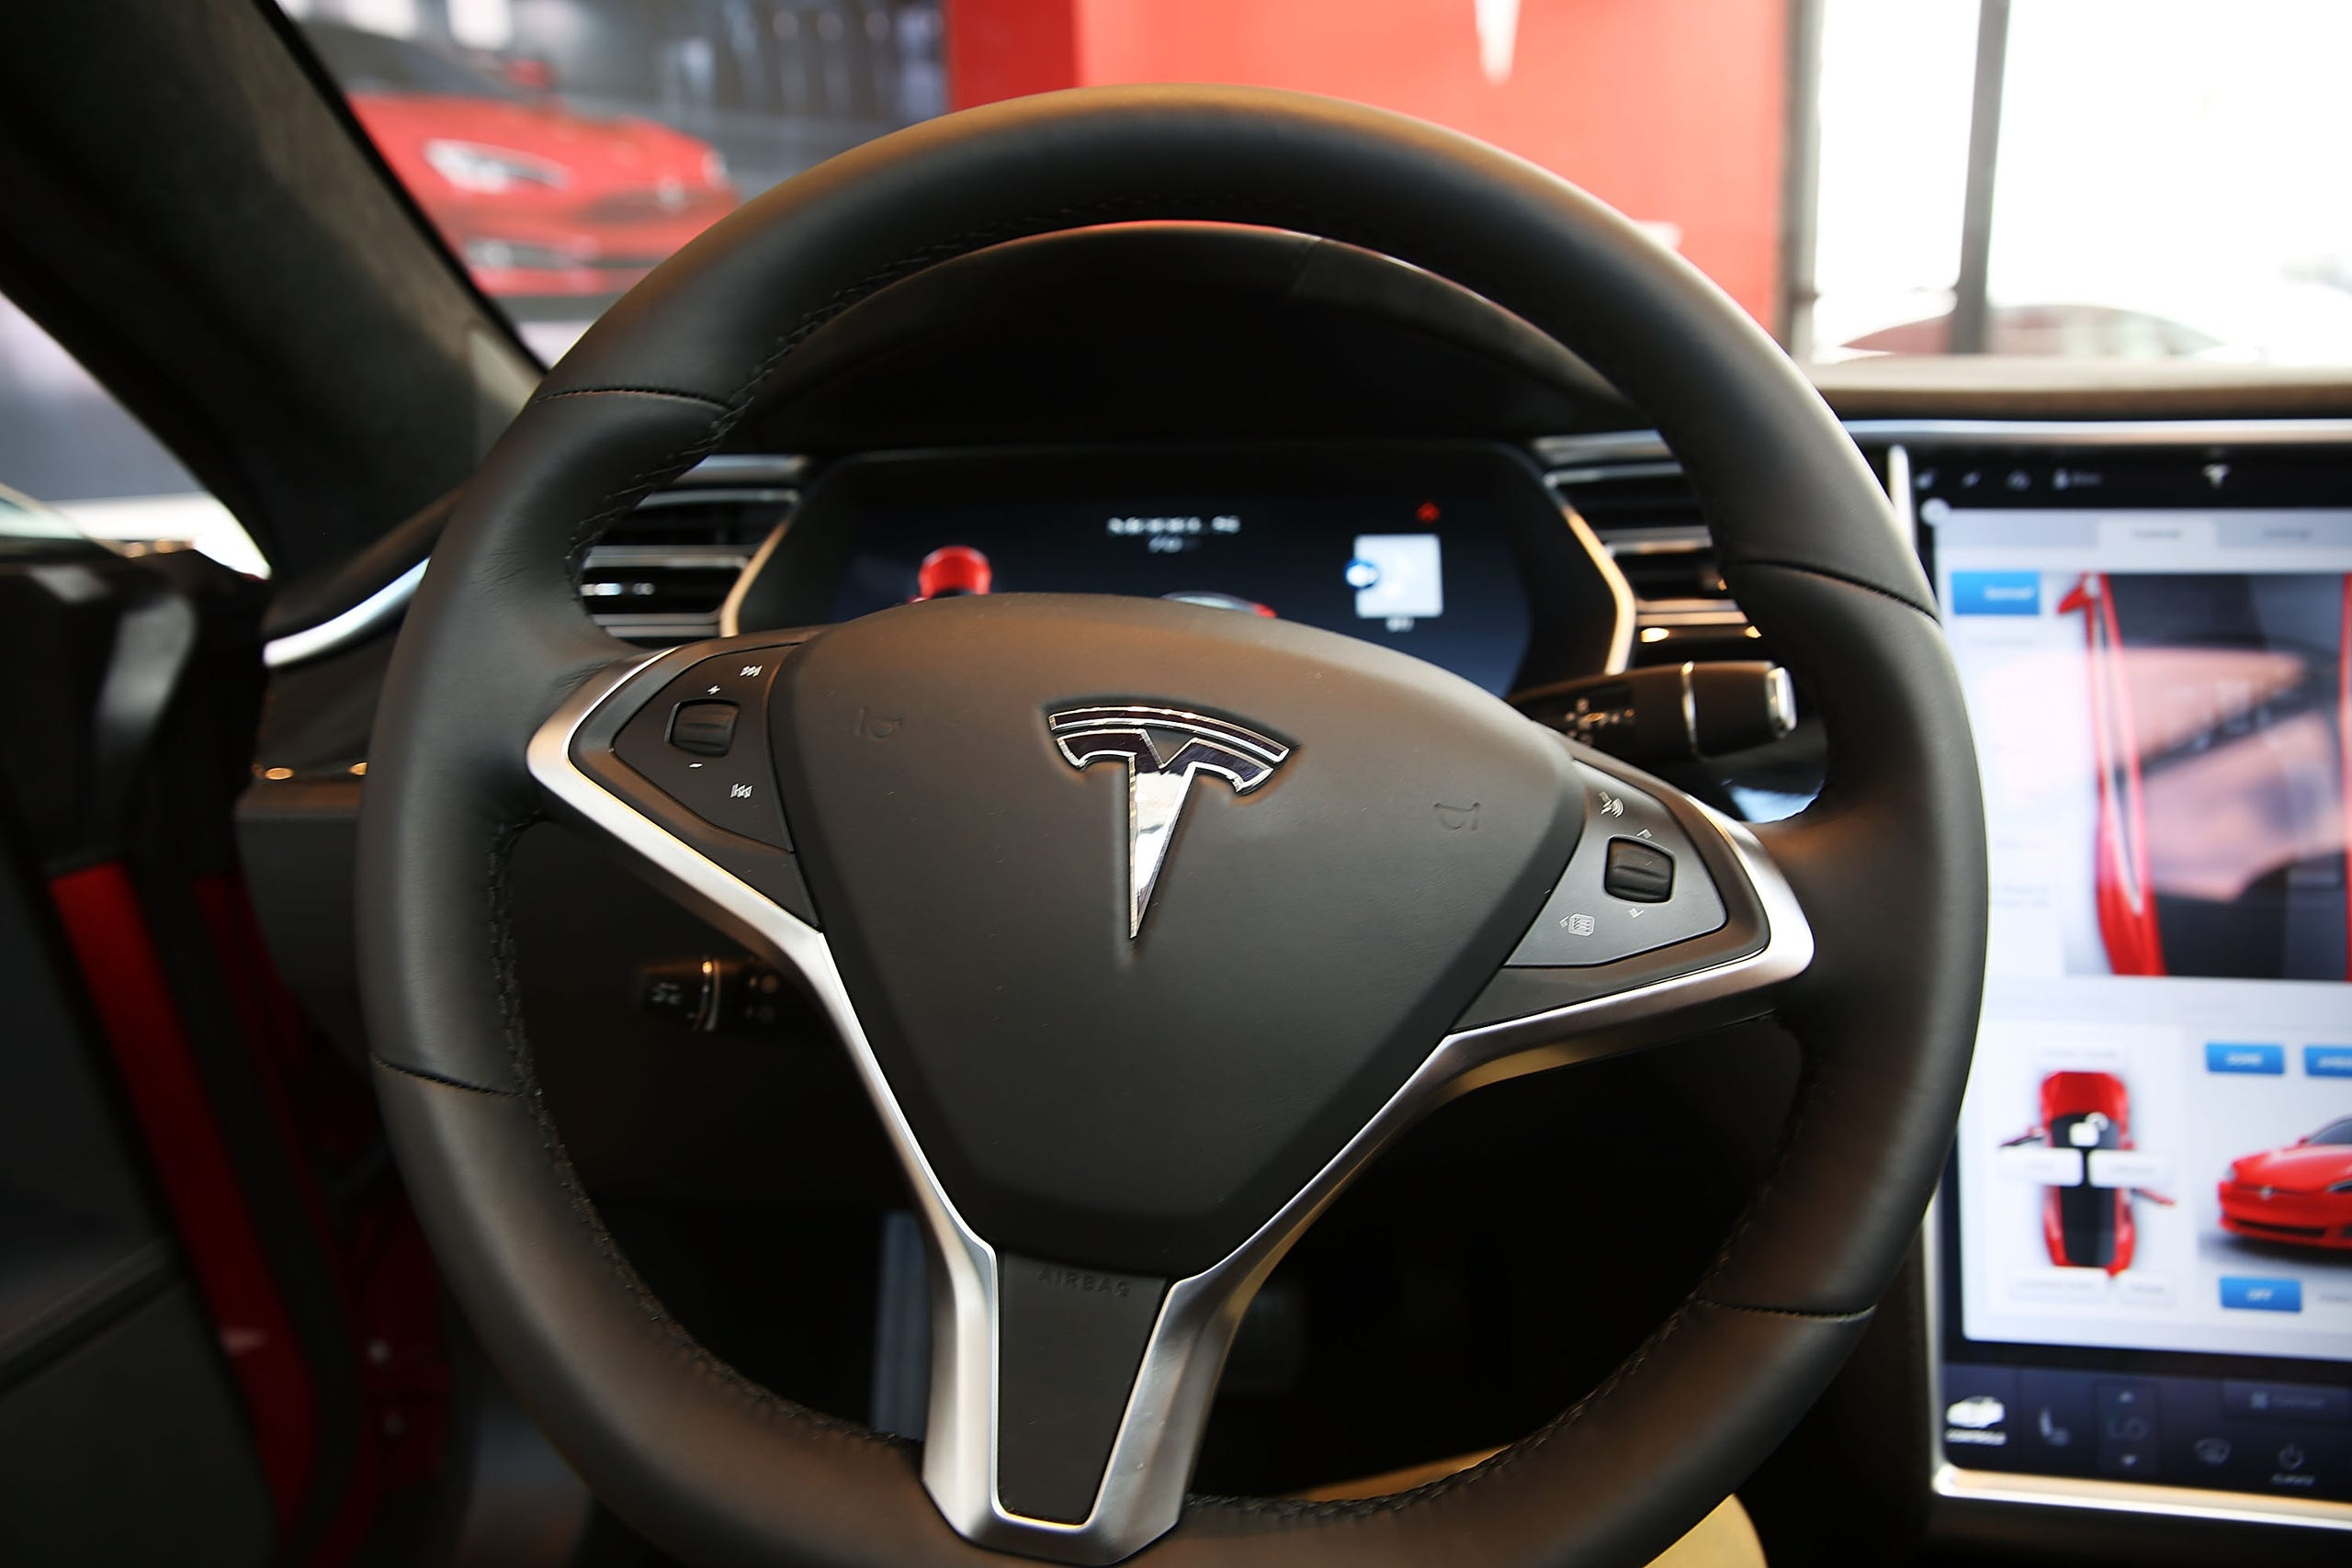 The inside of a Tesla vehicle is viewed as it sits parked in a new Tesla showroom and service center in Red Hook, Brooklyn.